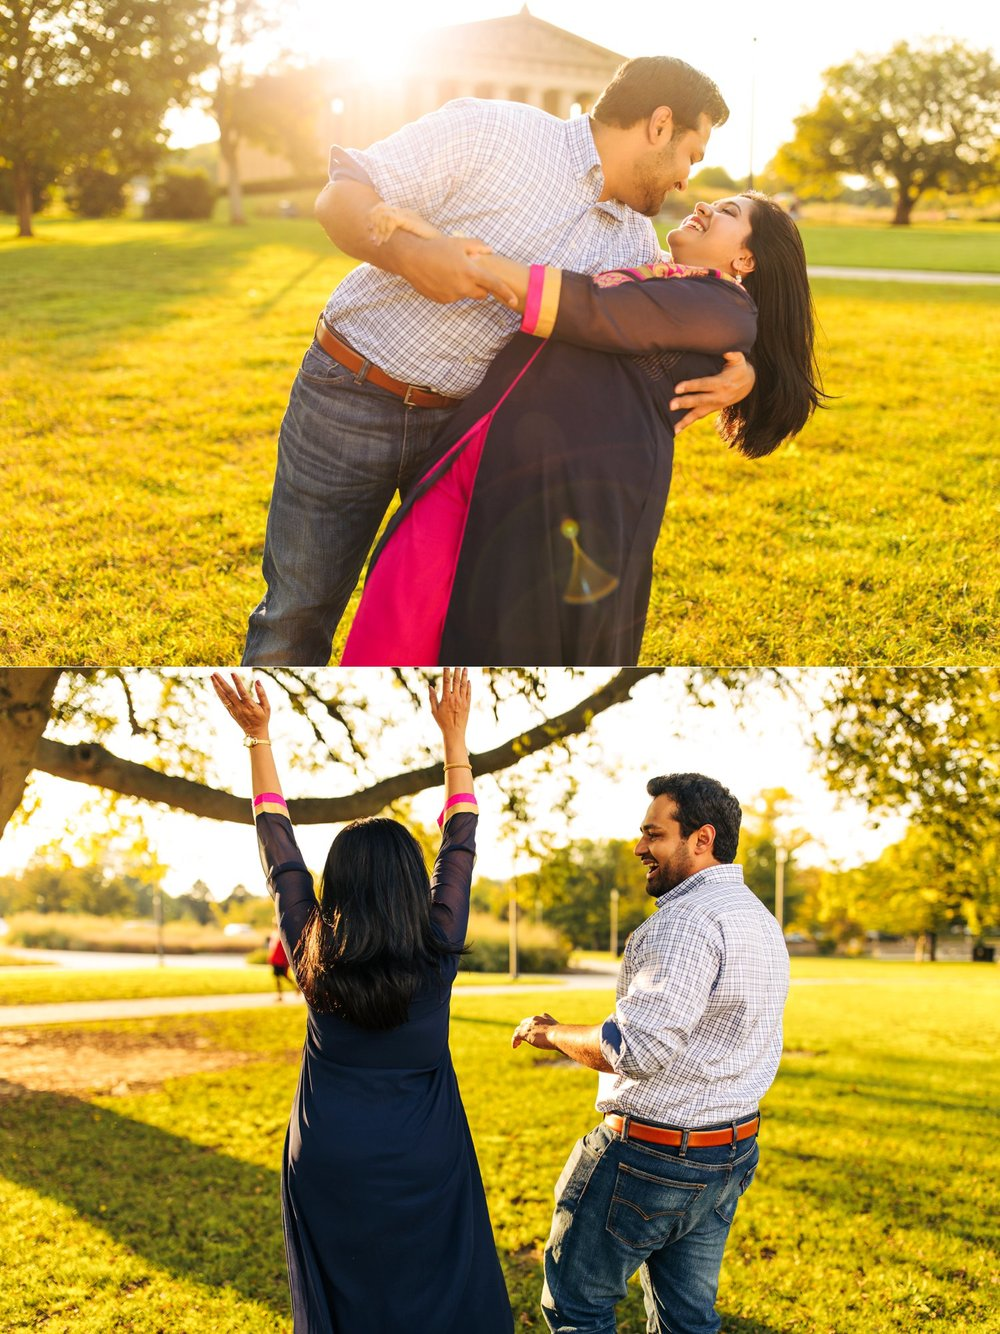 CK-Photo-t-r-engagement_0002.jpg